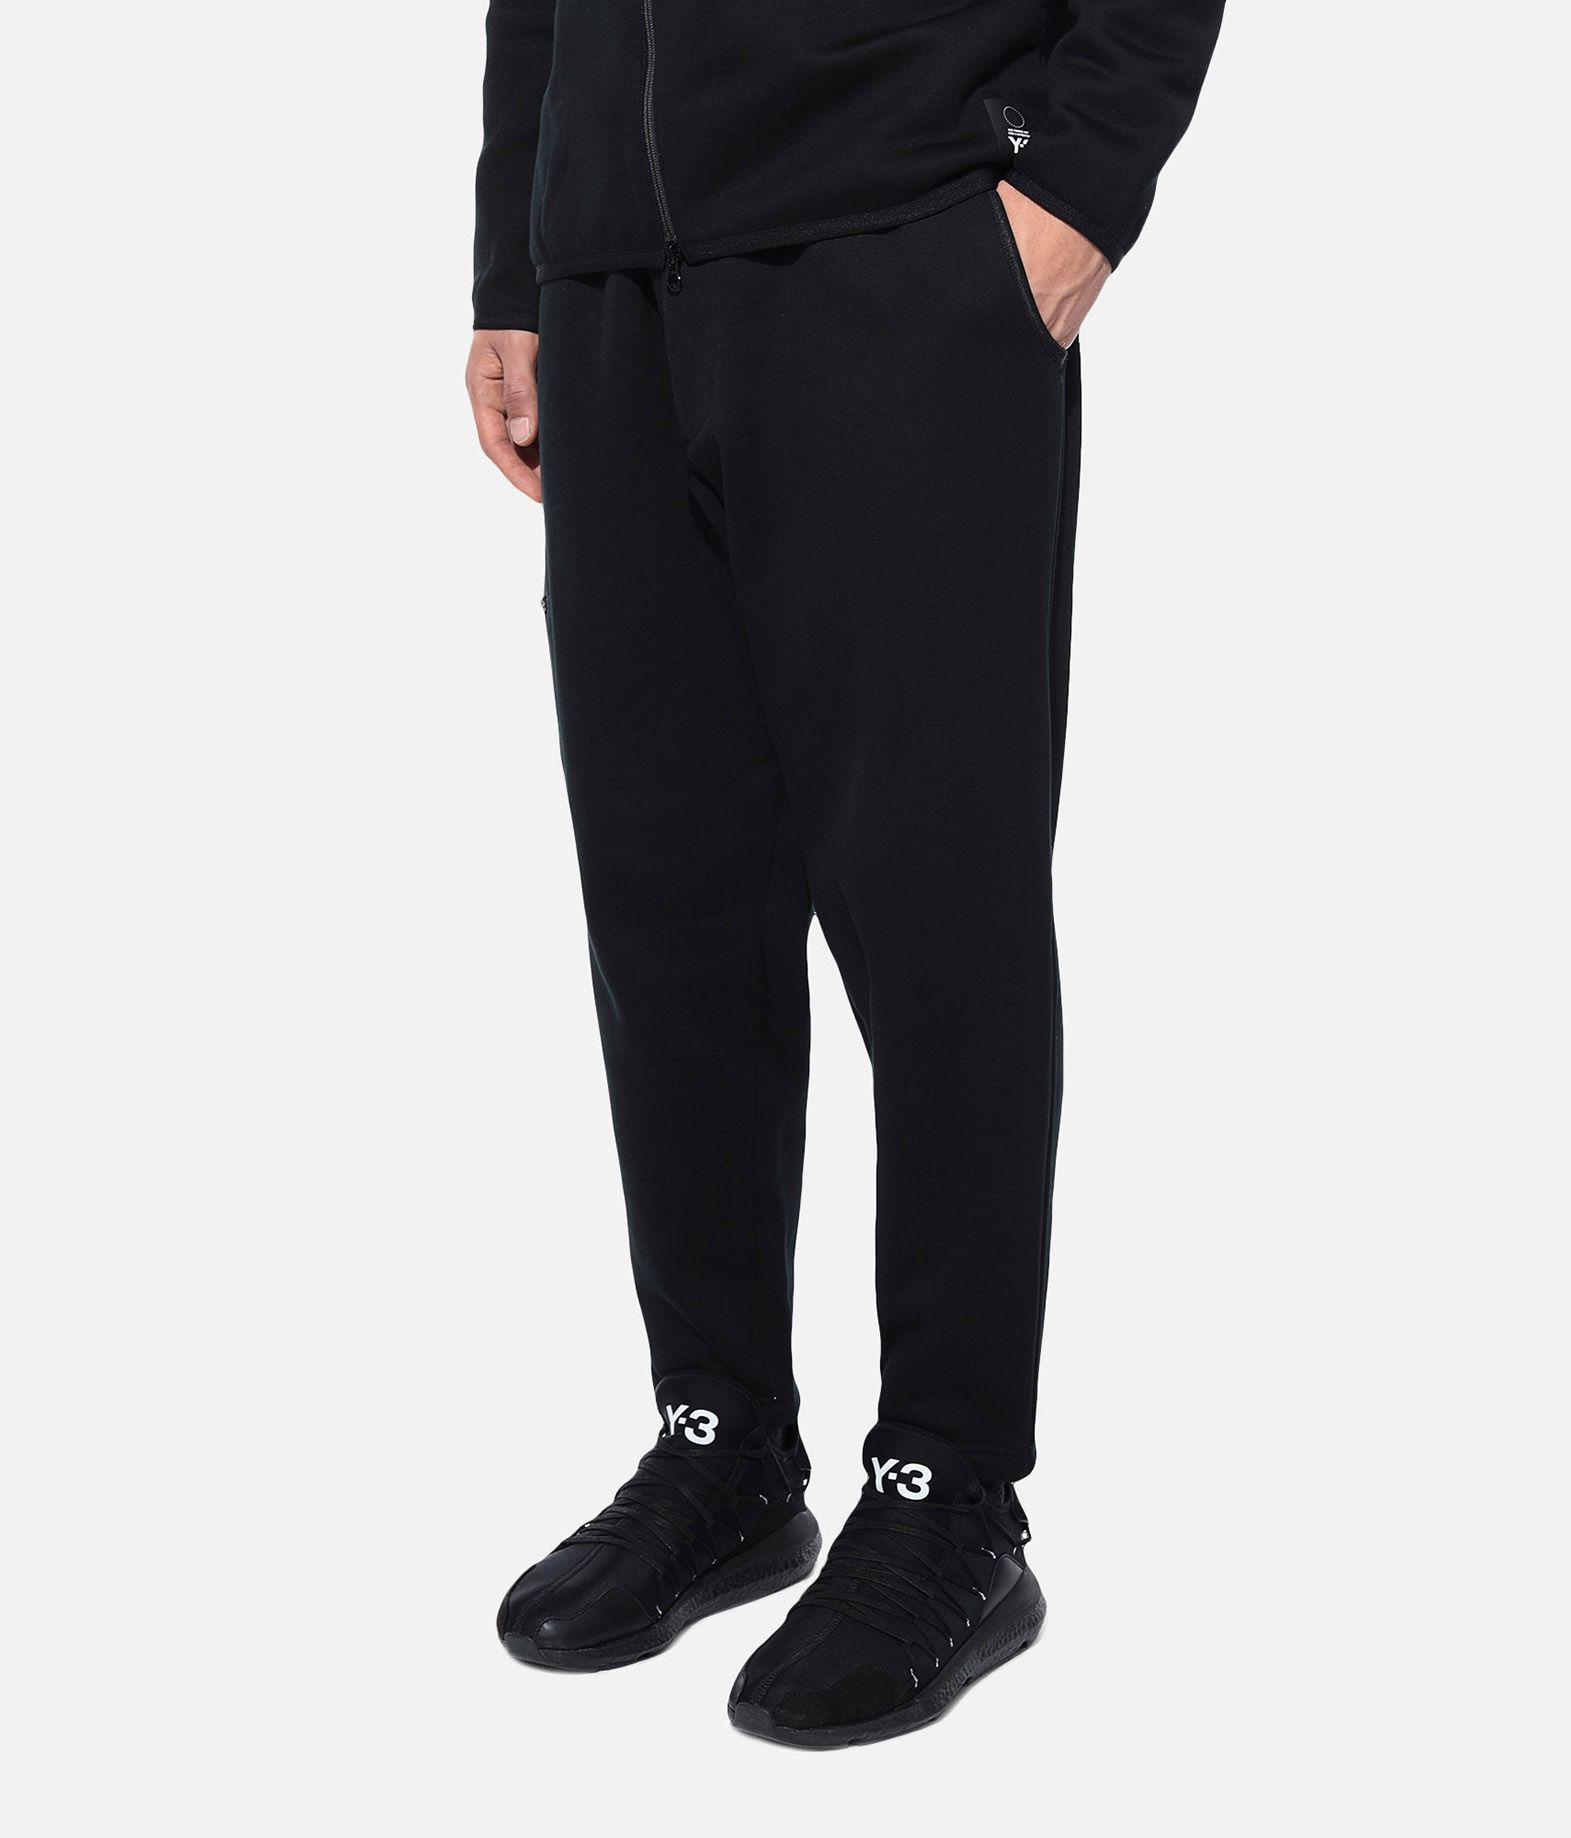 Y-3 Y-3 Binding Cargo Pants Sweatpants Man e